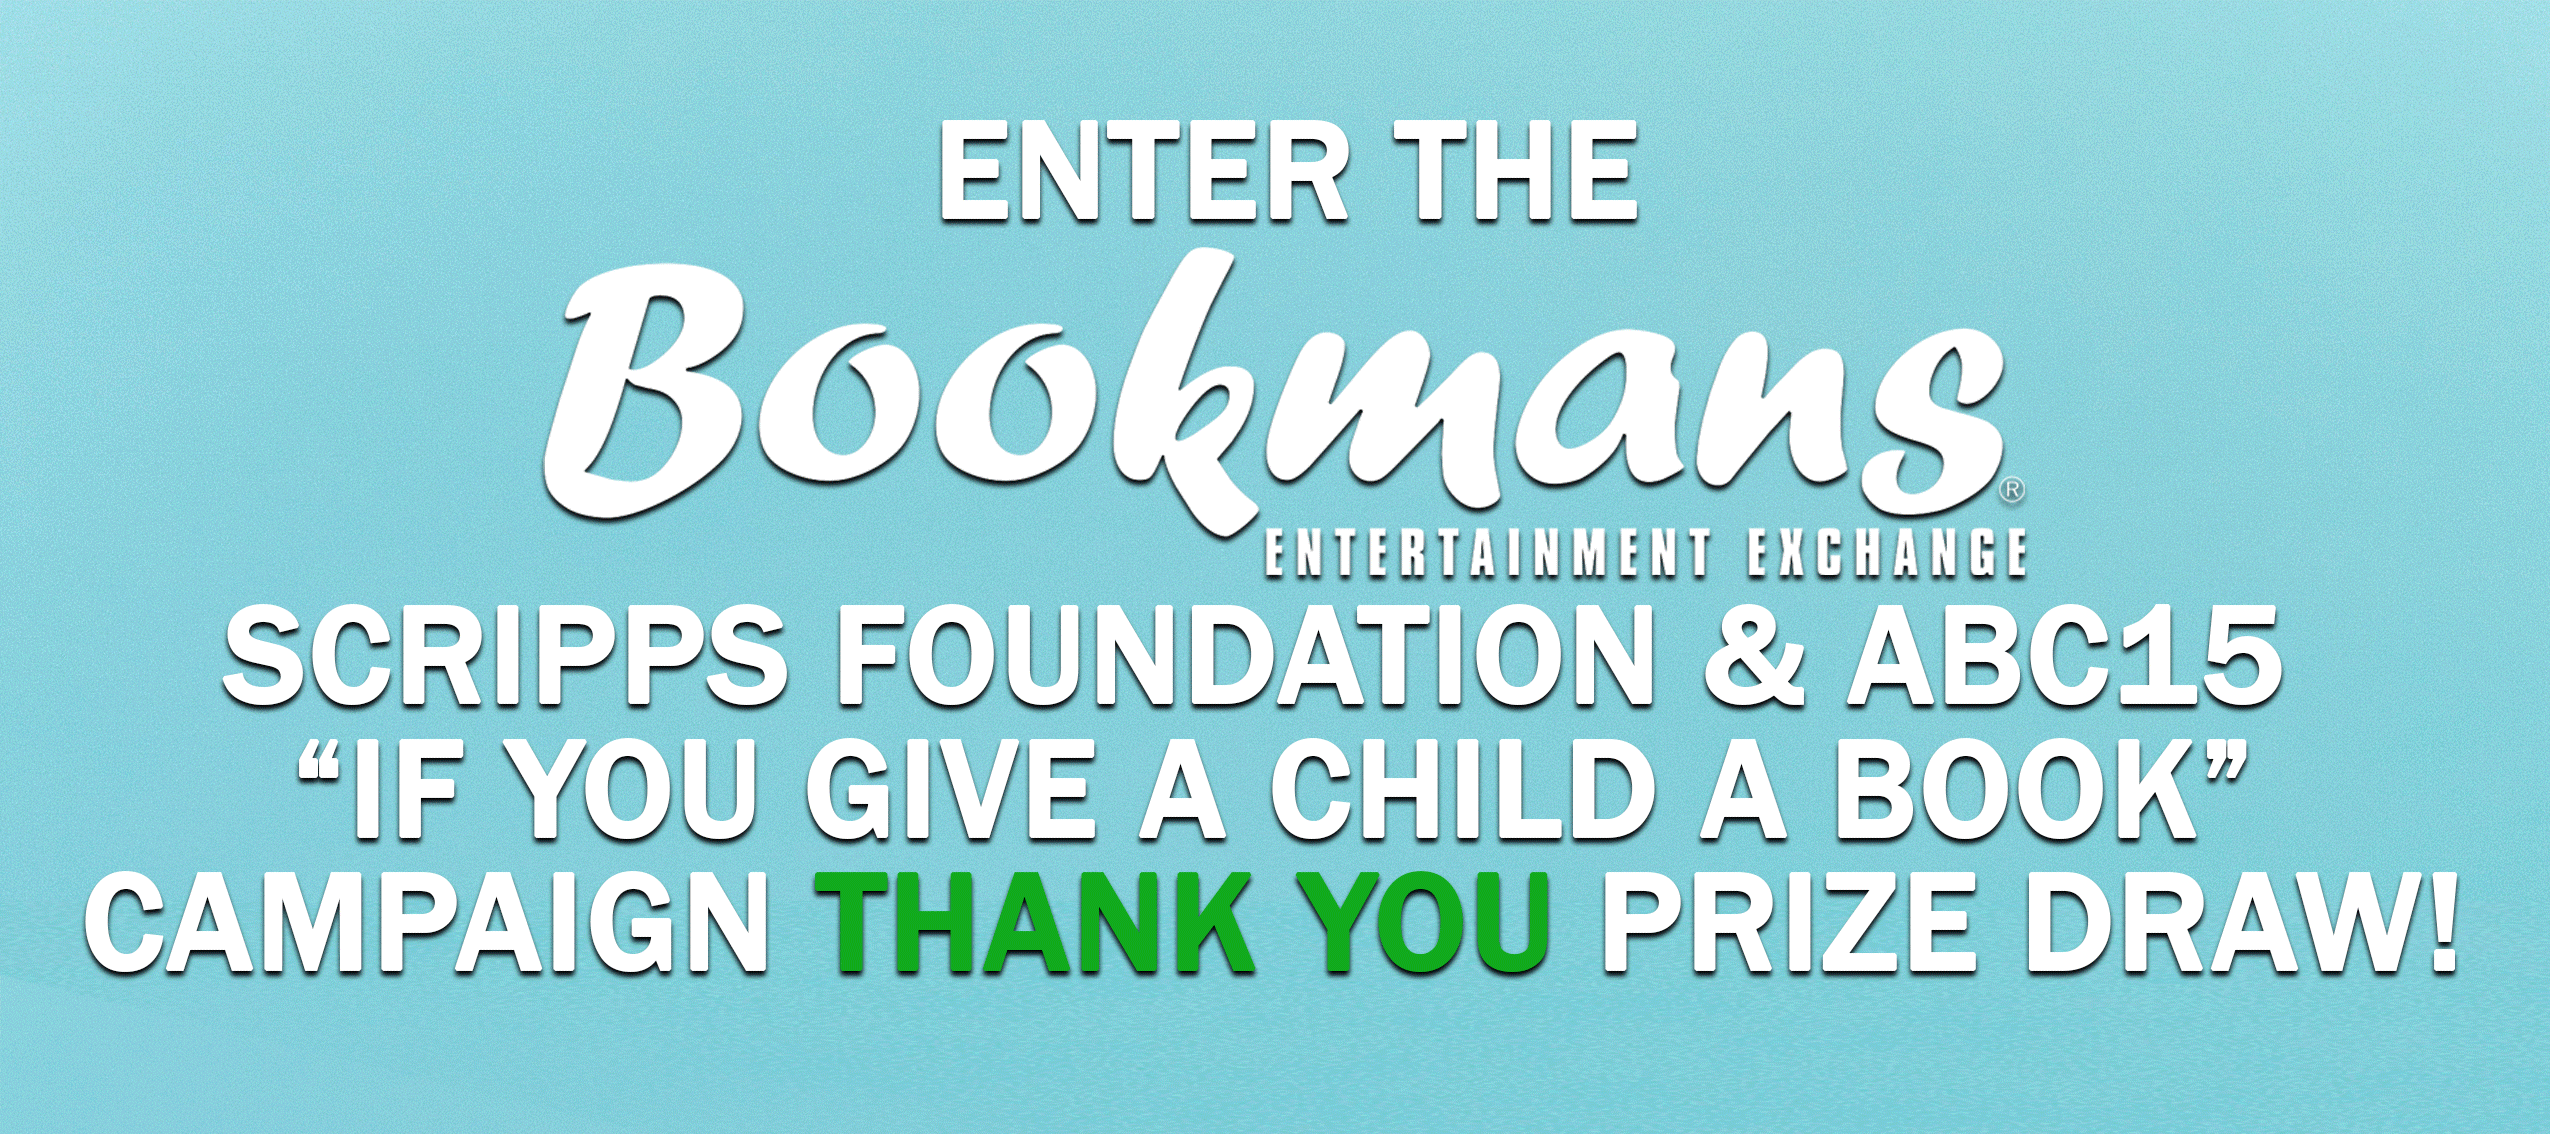 if you give a child a book entry information